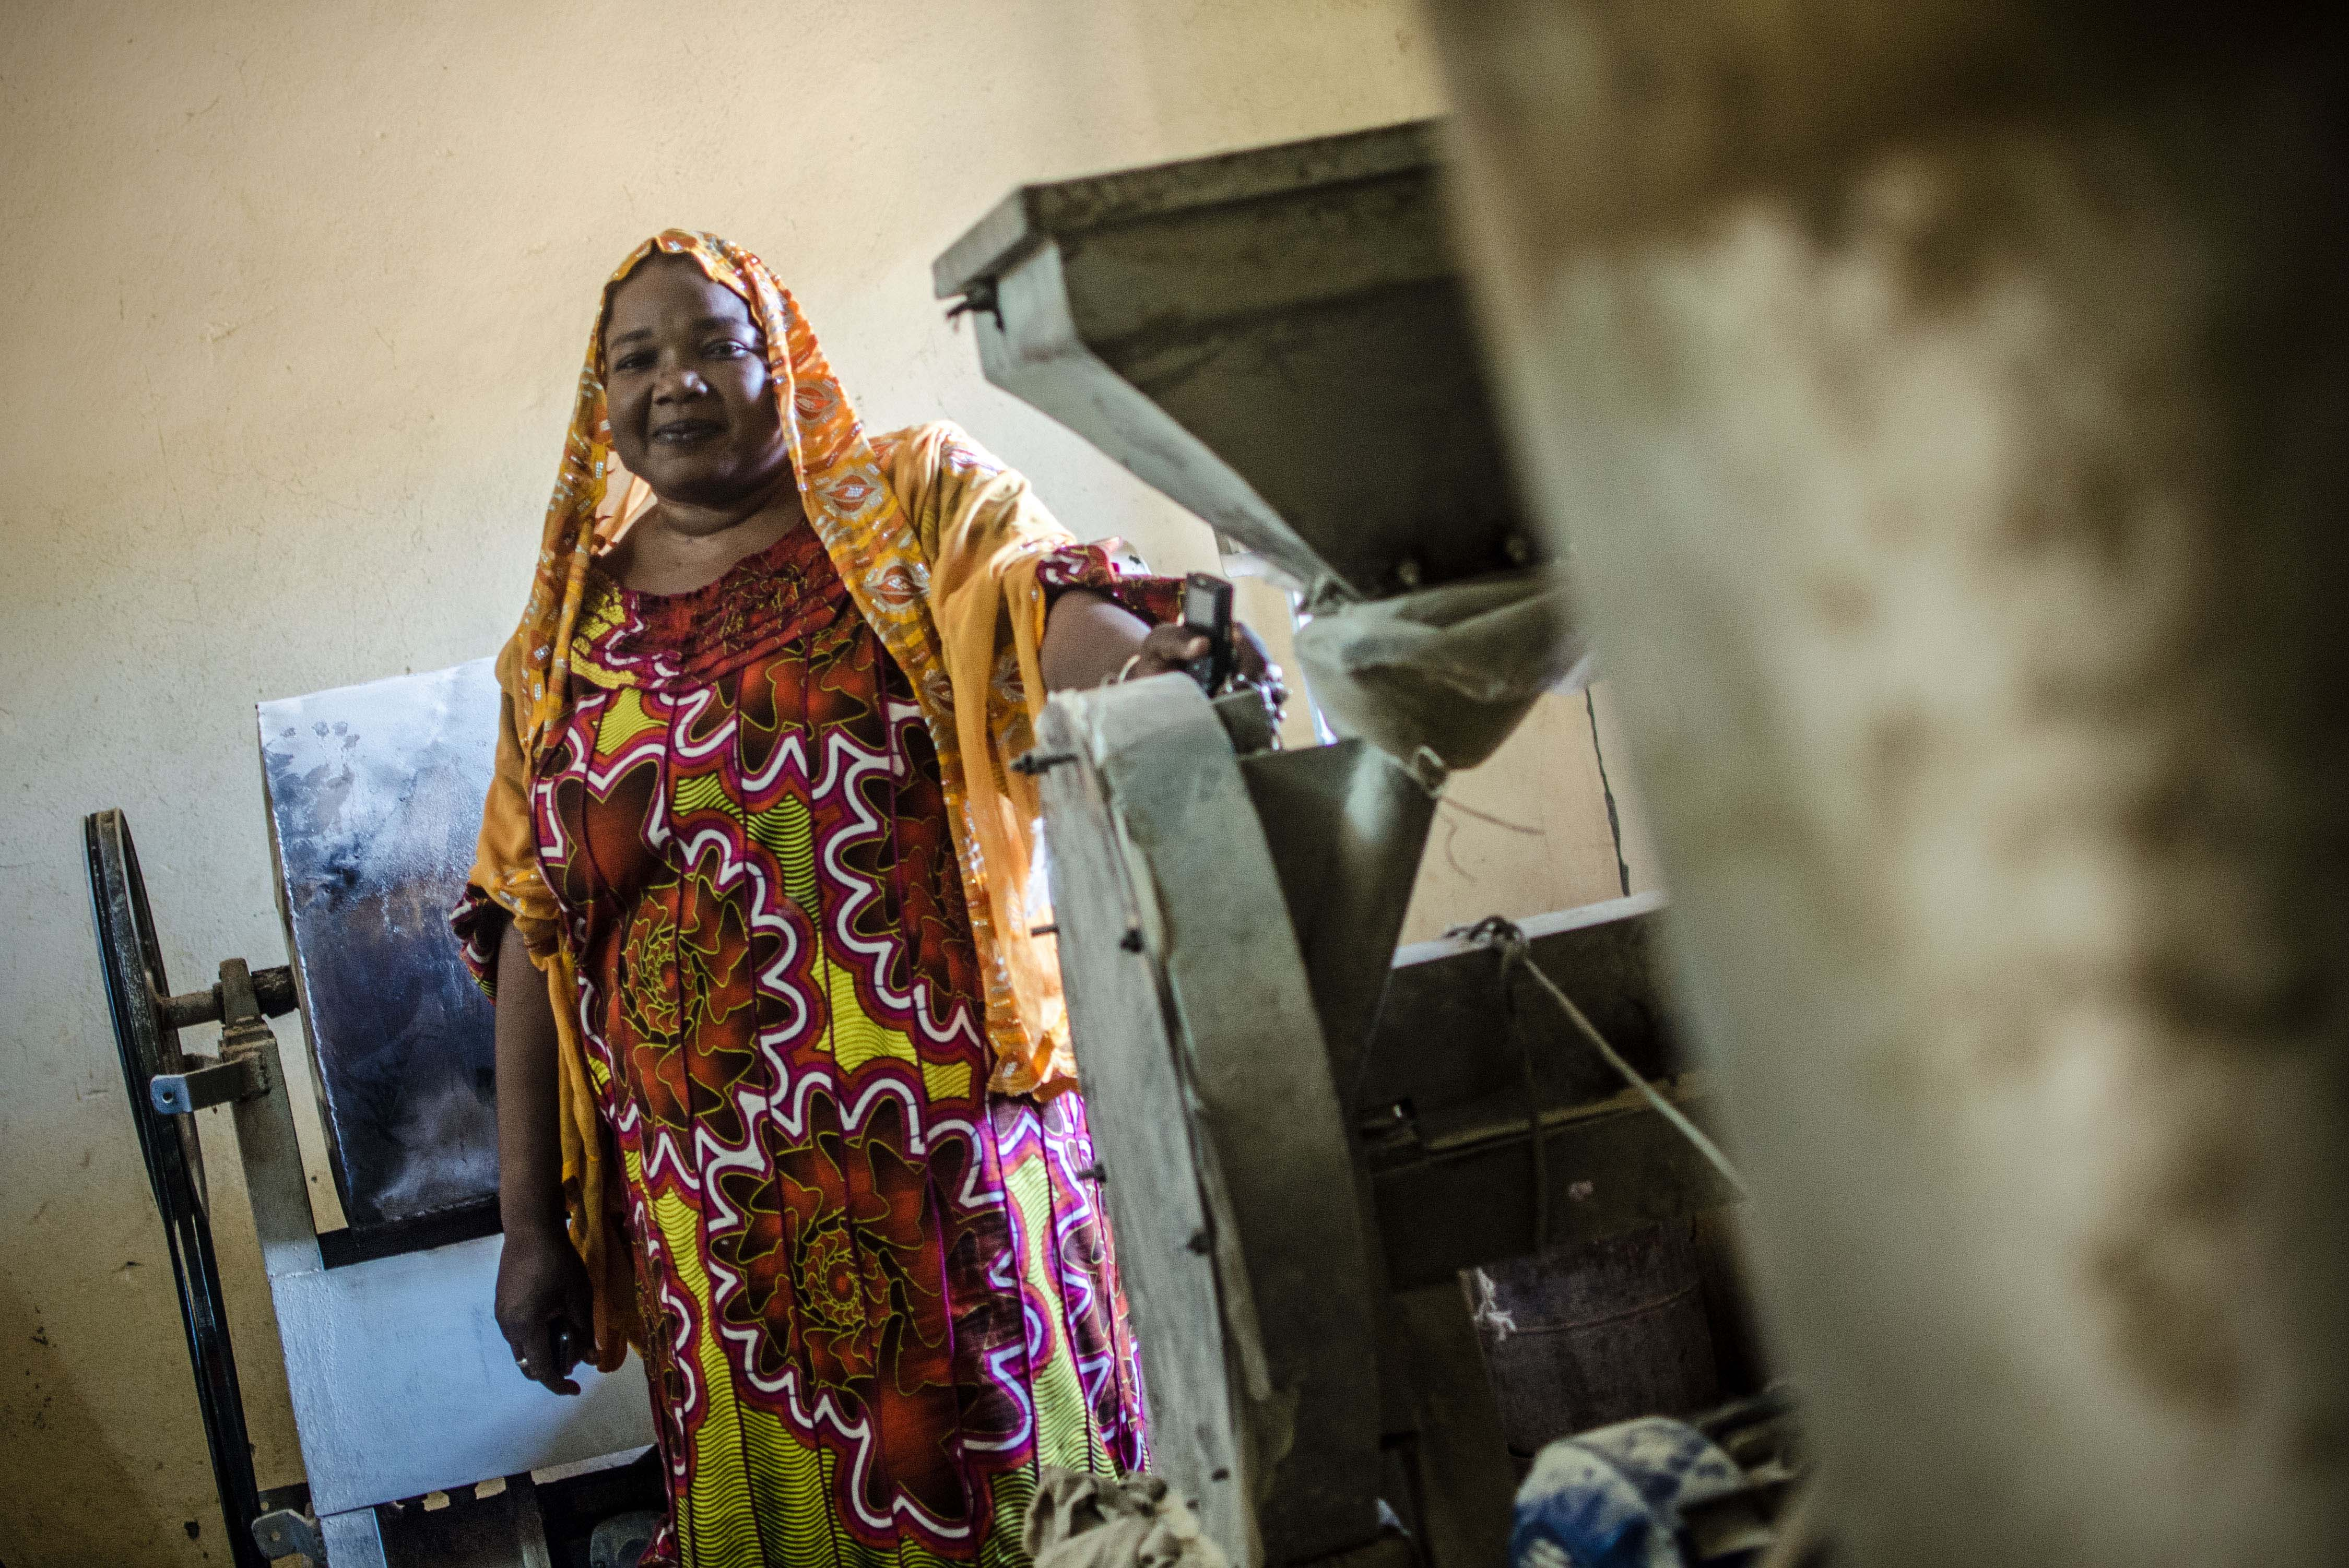 Guindo Tembely, director of the NGO, YAGTU, stands behind machinery used to make Farine, a protein rich dietary supplement given to women and children in Mali's Mopti region.